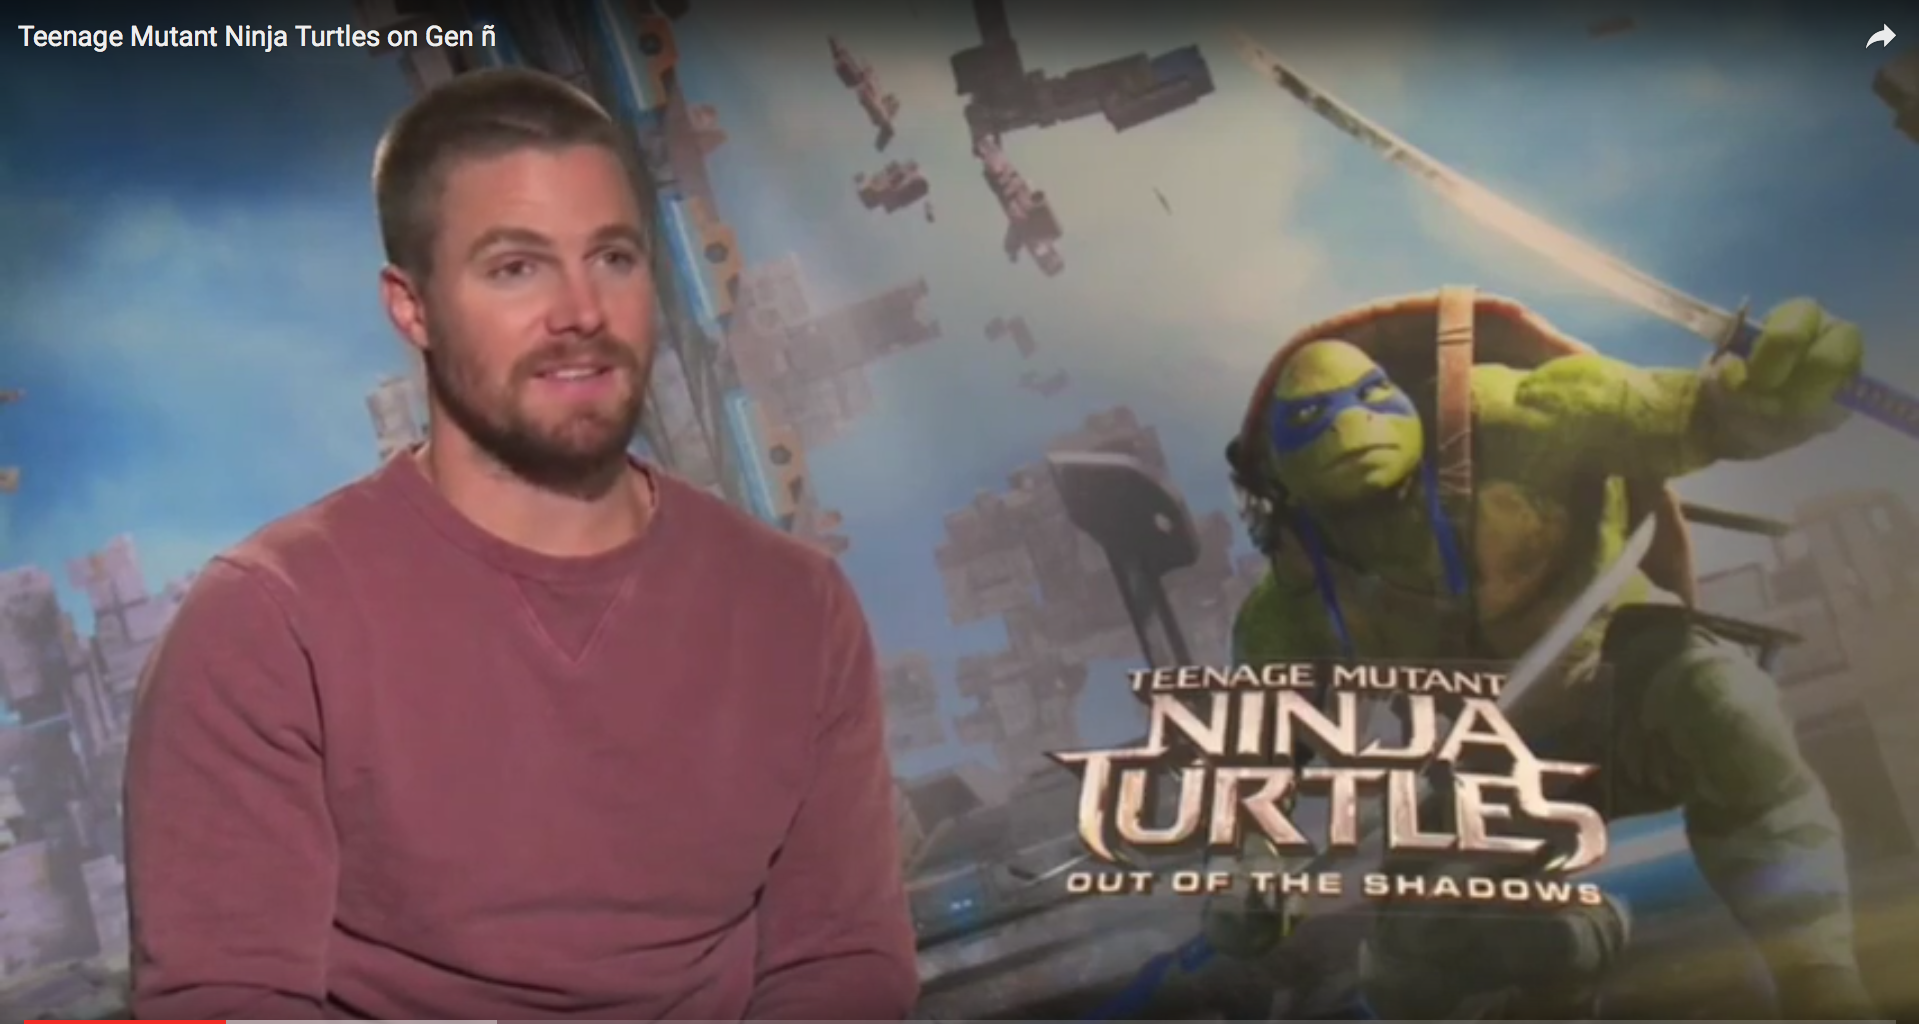 Stephen Amell of Arrow in TMNT2 dons Casey Jones mask